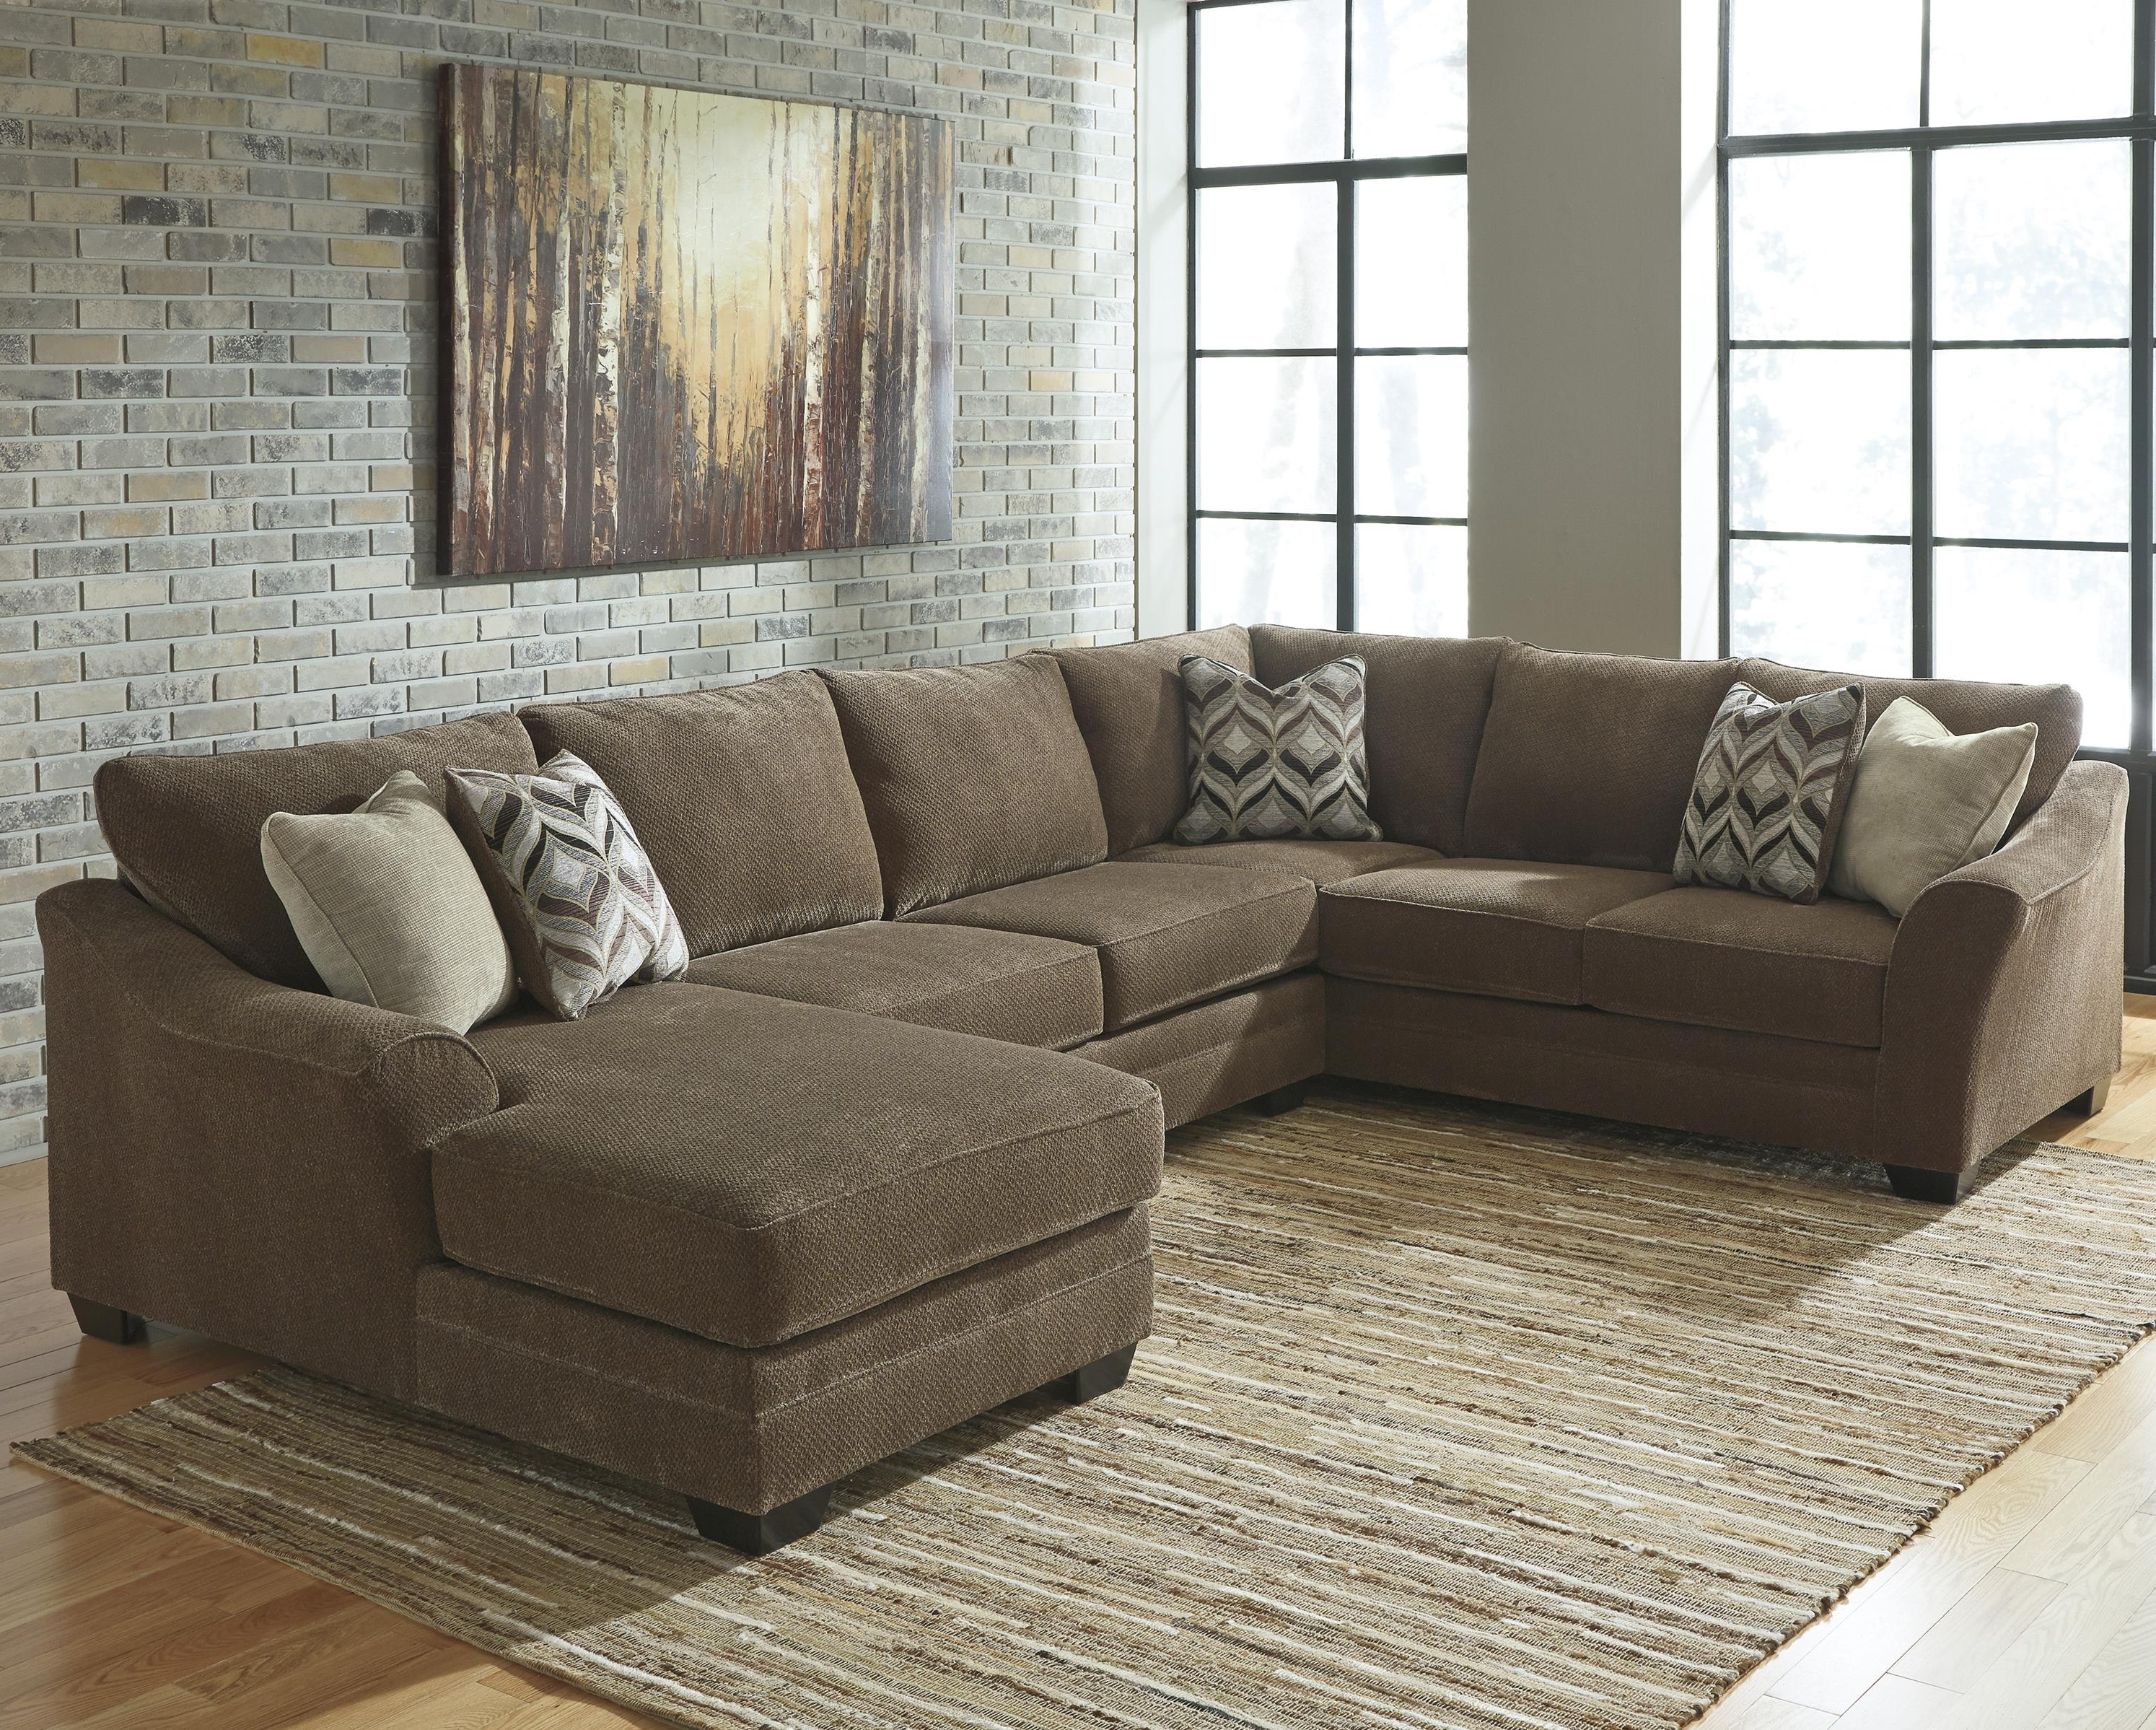 Regina Sectional Sofas Intended For Best And Newest Sofa Right Sectional Braxton Java Arm Facing Hand Pb Basic Chaise (View 13 of 20)